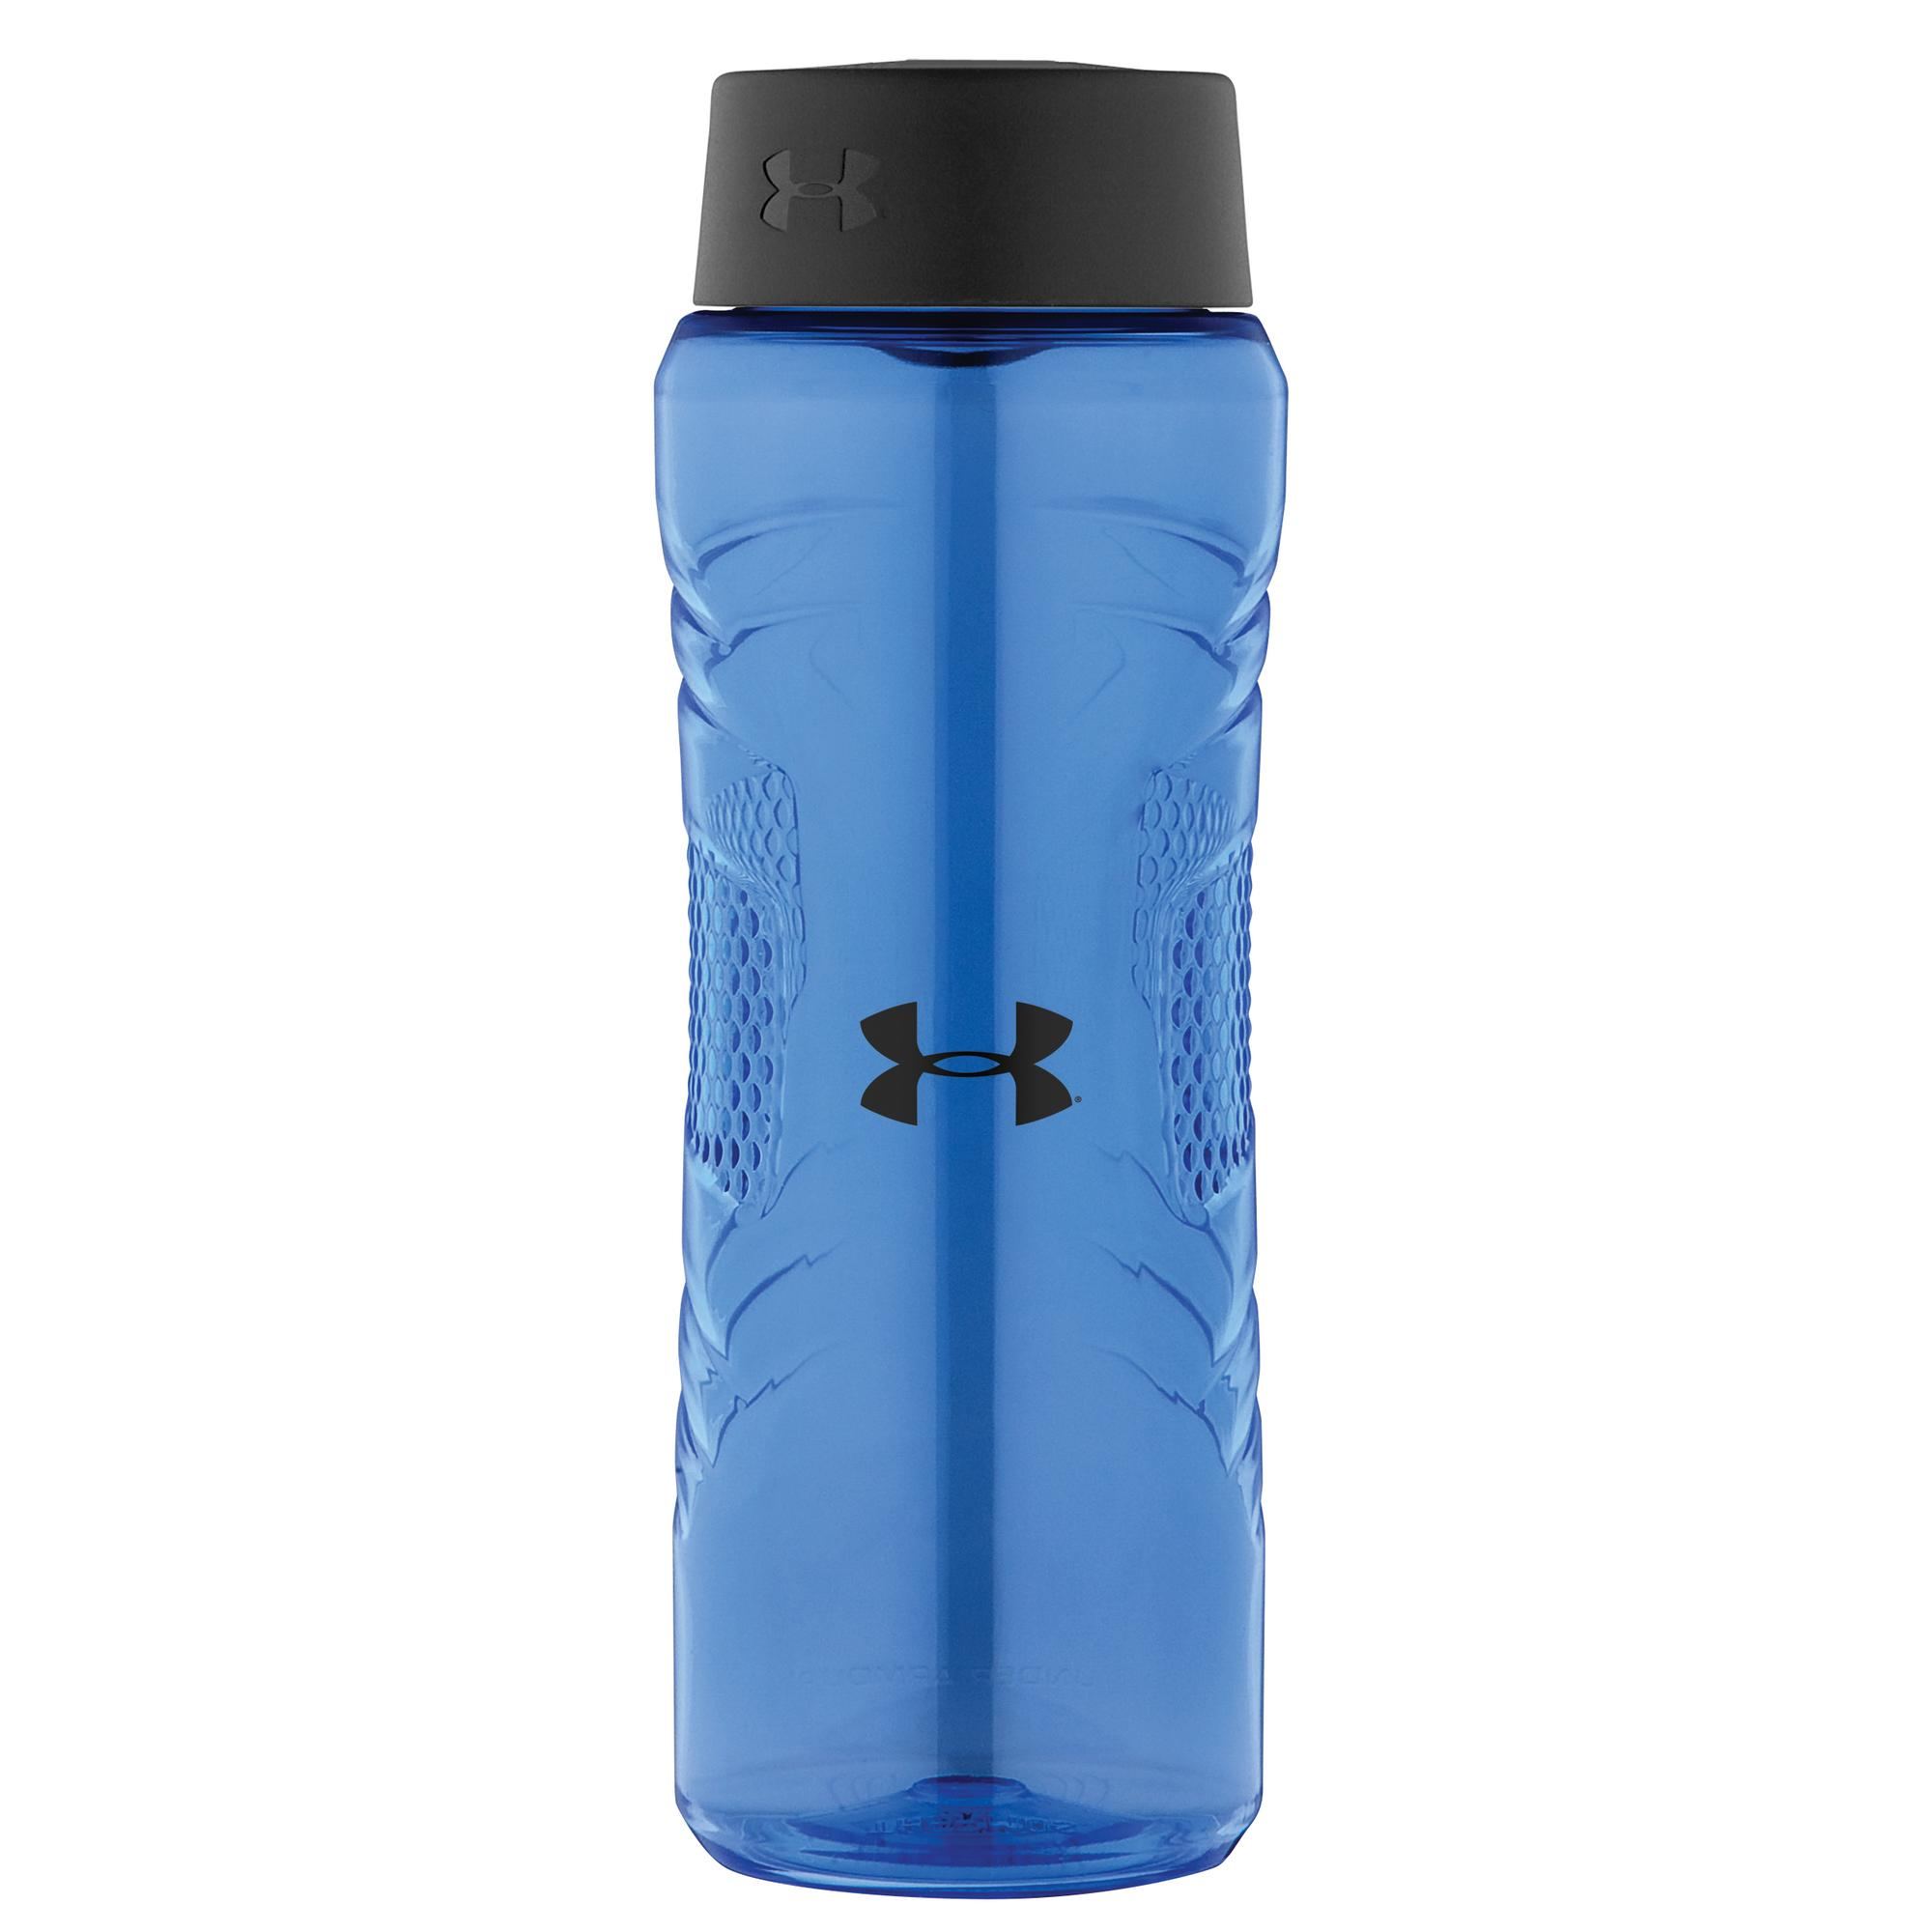 24 oz Tritan Bottle with Solid Top